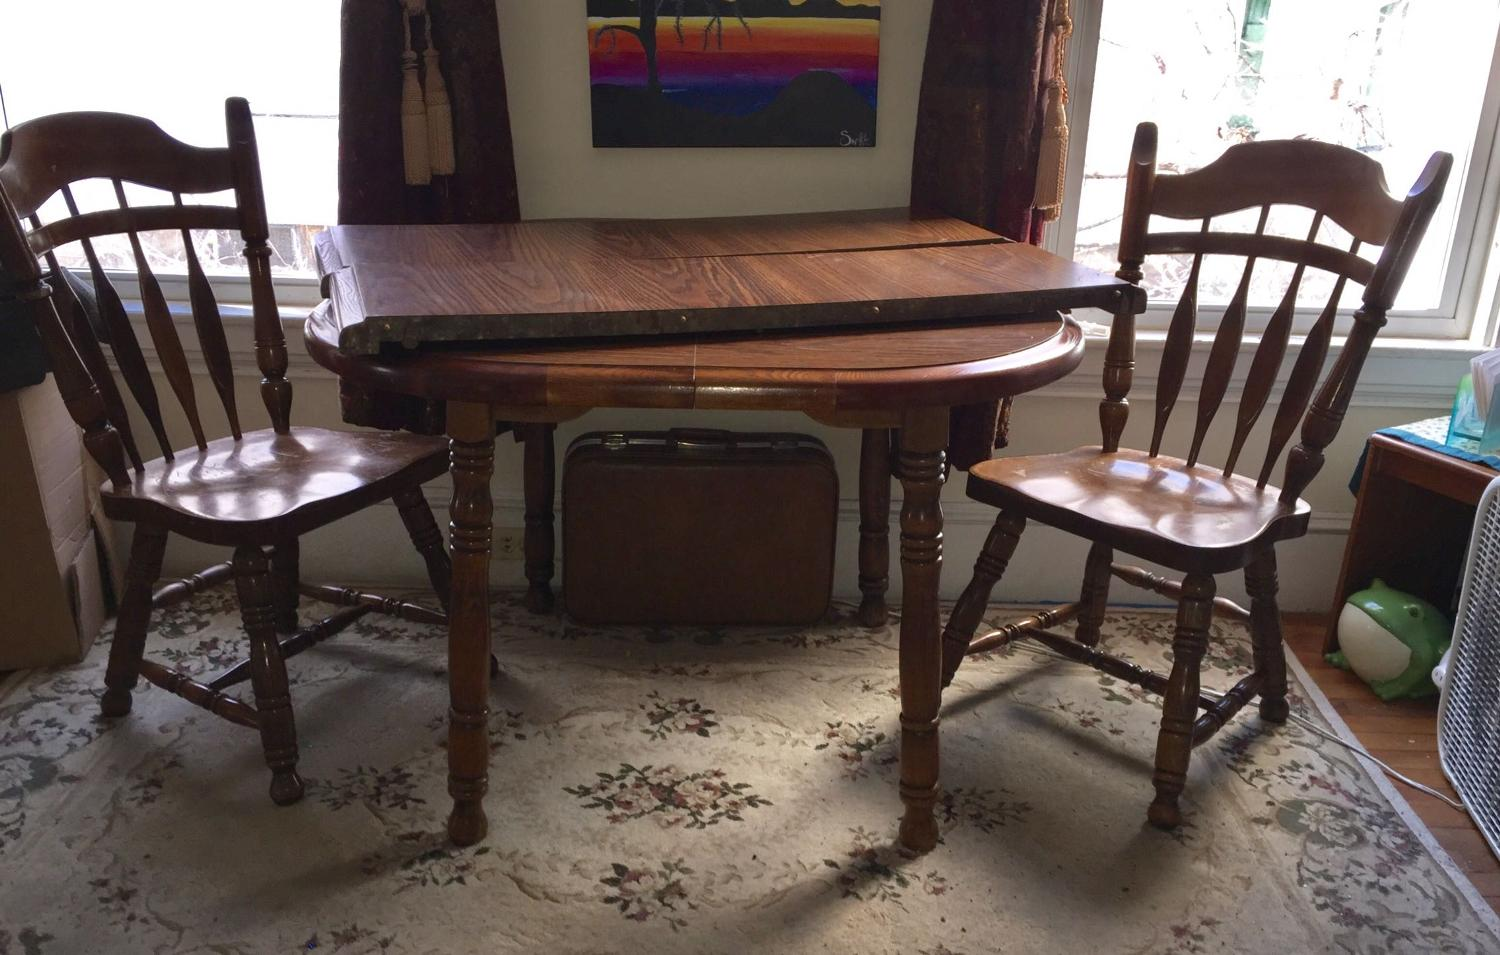 Find More Wooden Dining Room Table With Two Leaves And Three Chairs For Sale At Up To 90 Off